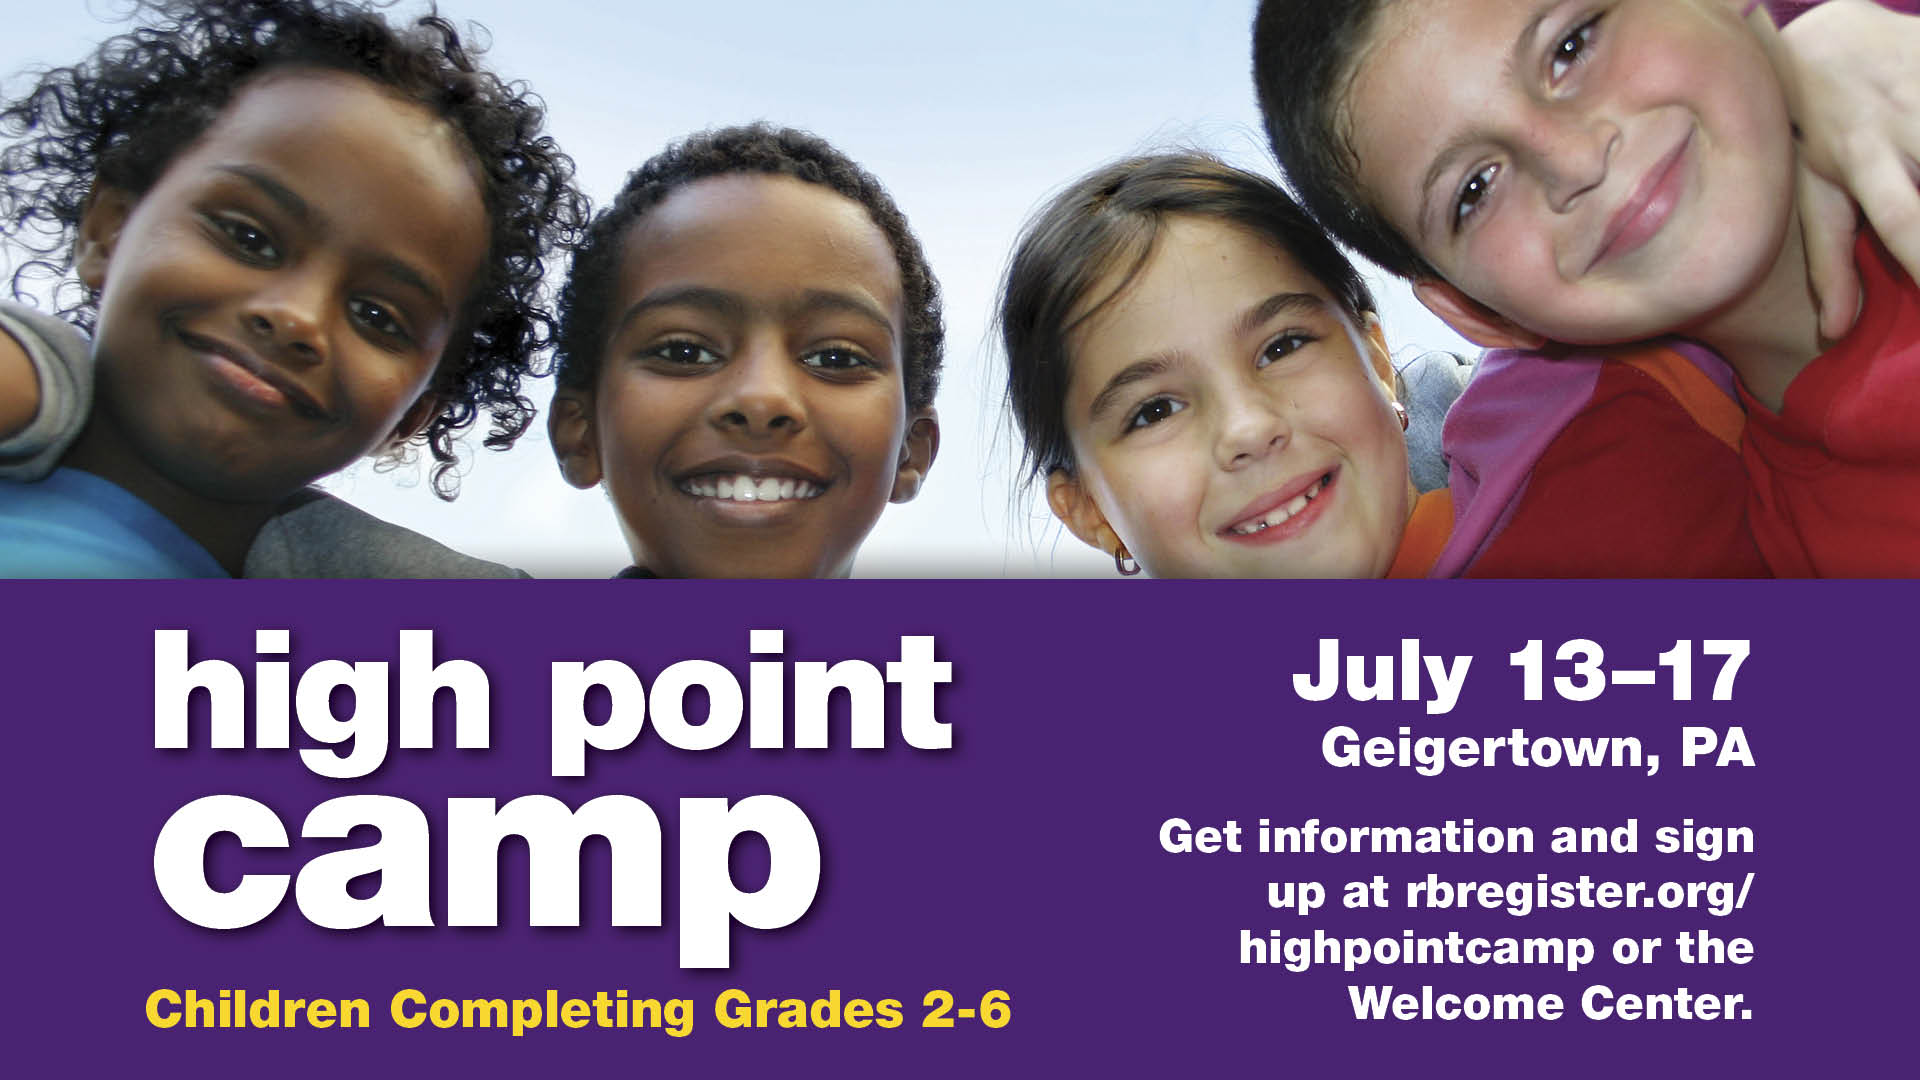 High Point Camp